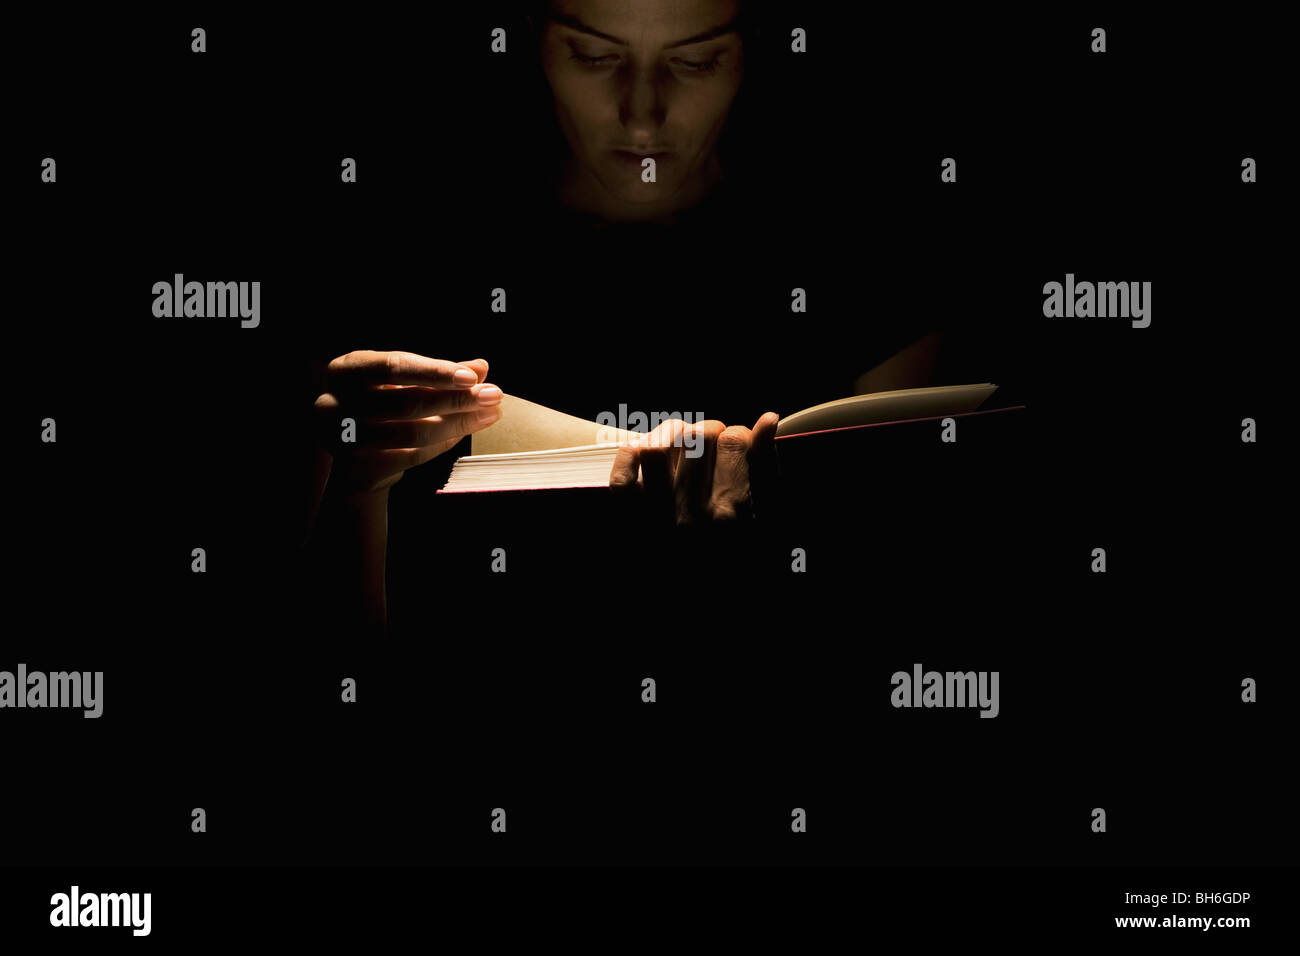 Woman Reading book Photo Stock